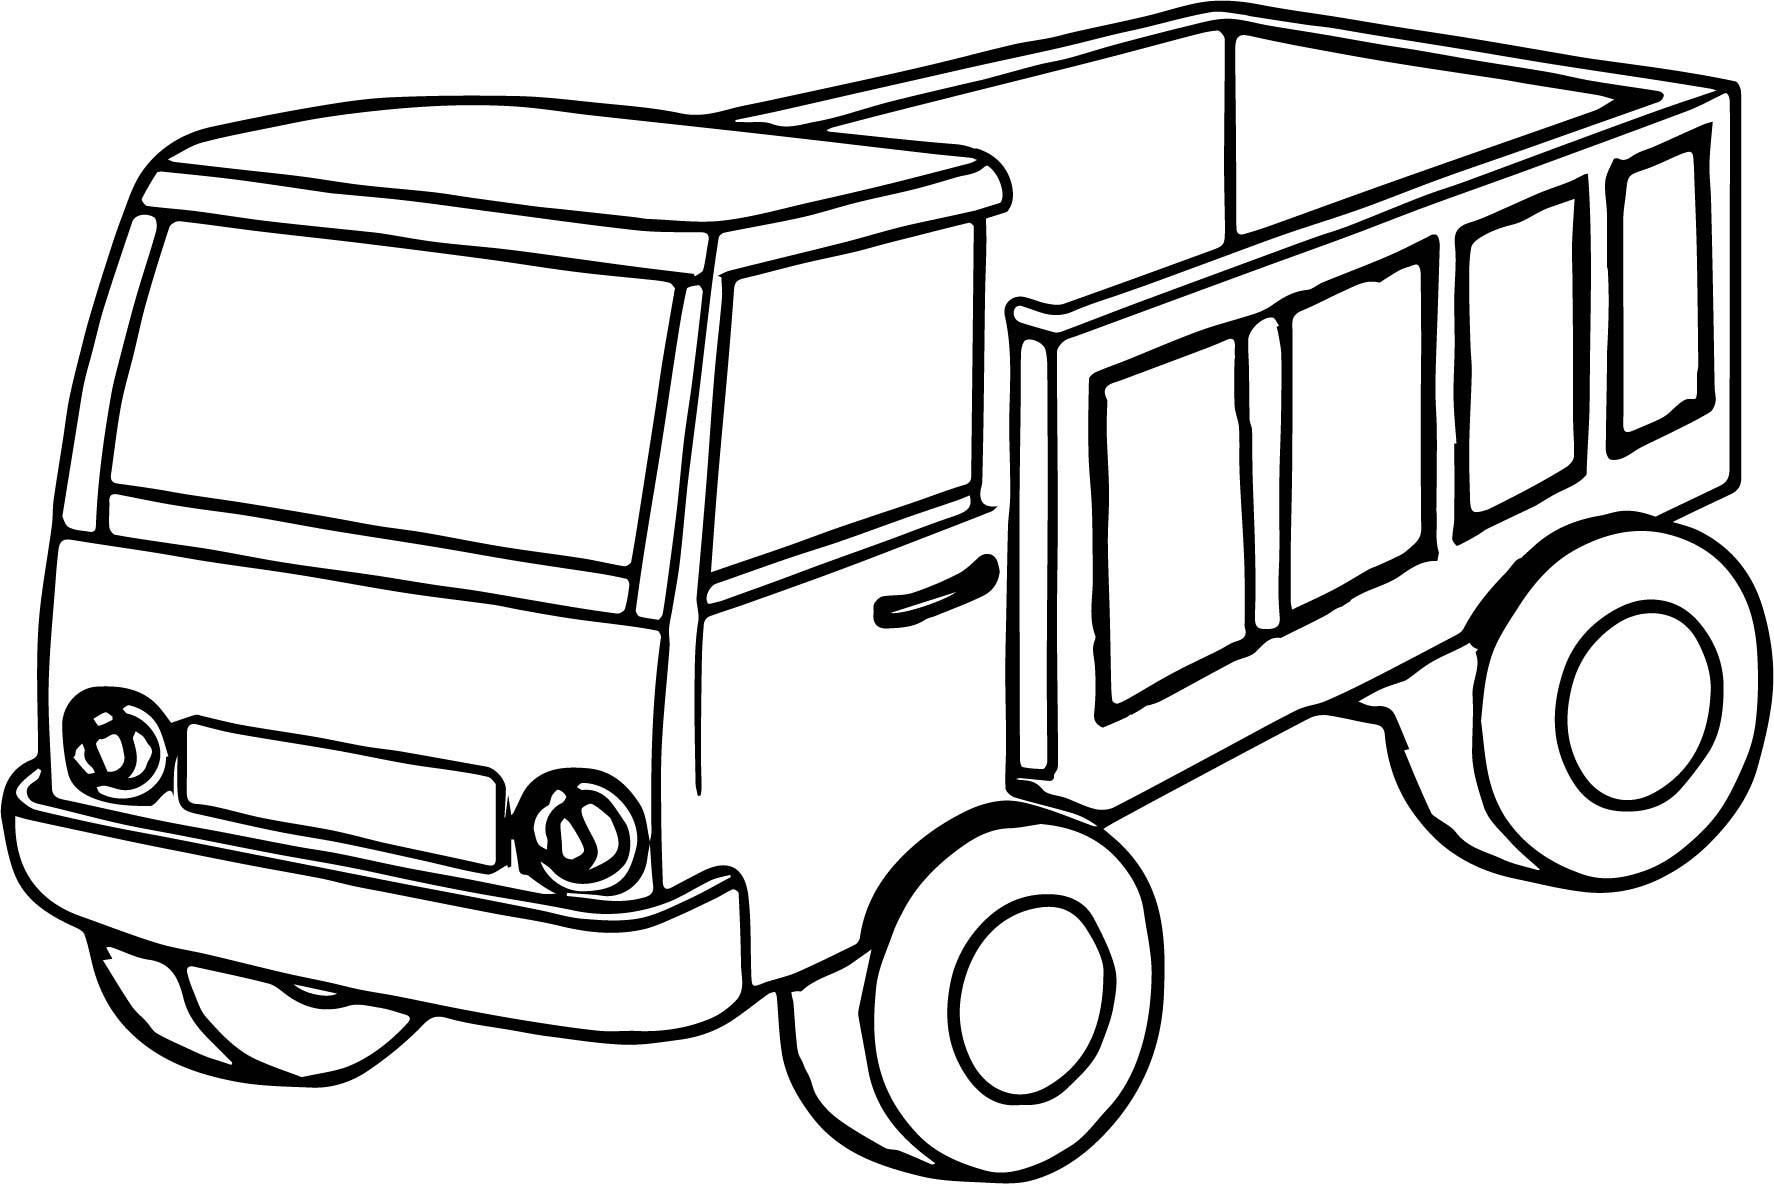 1774x1184 Ford Truck Coloring Pages Fresh Truck Coloring Pages Page Image